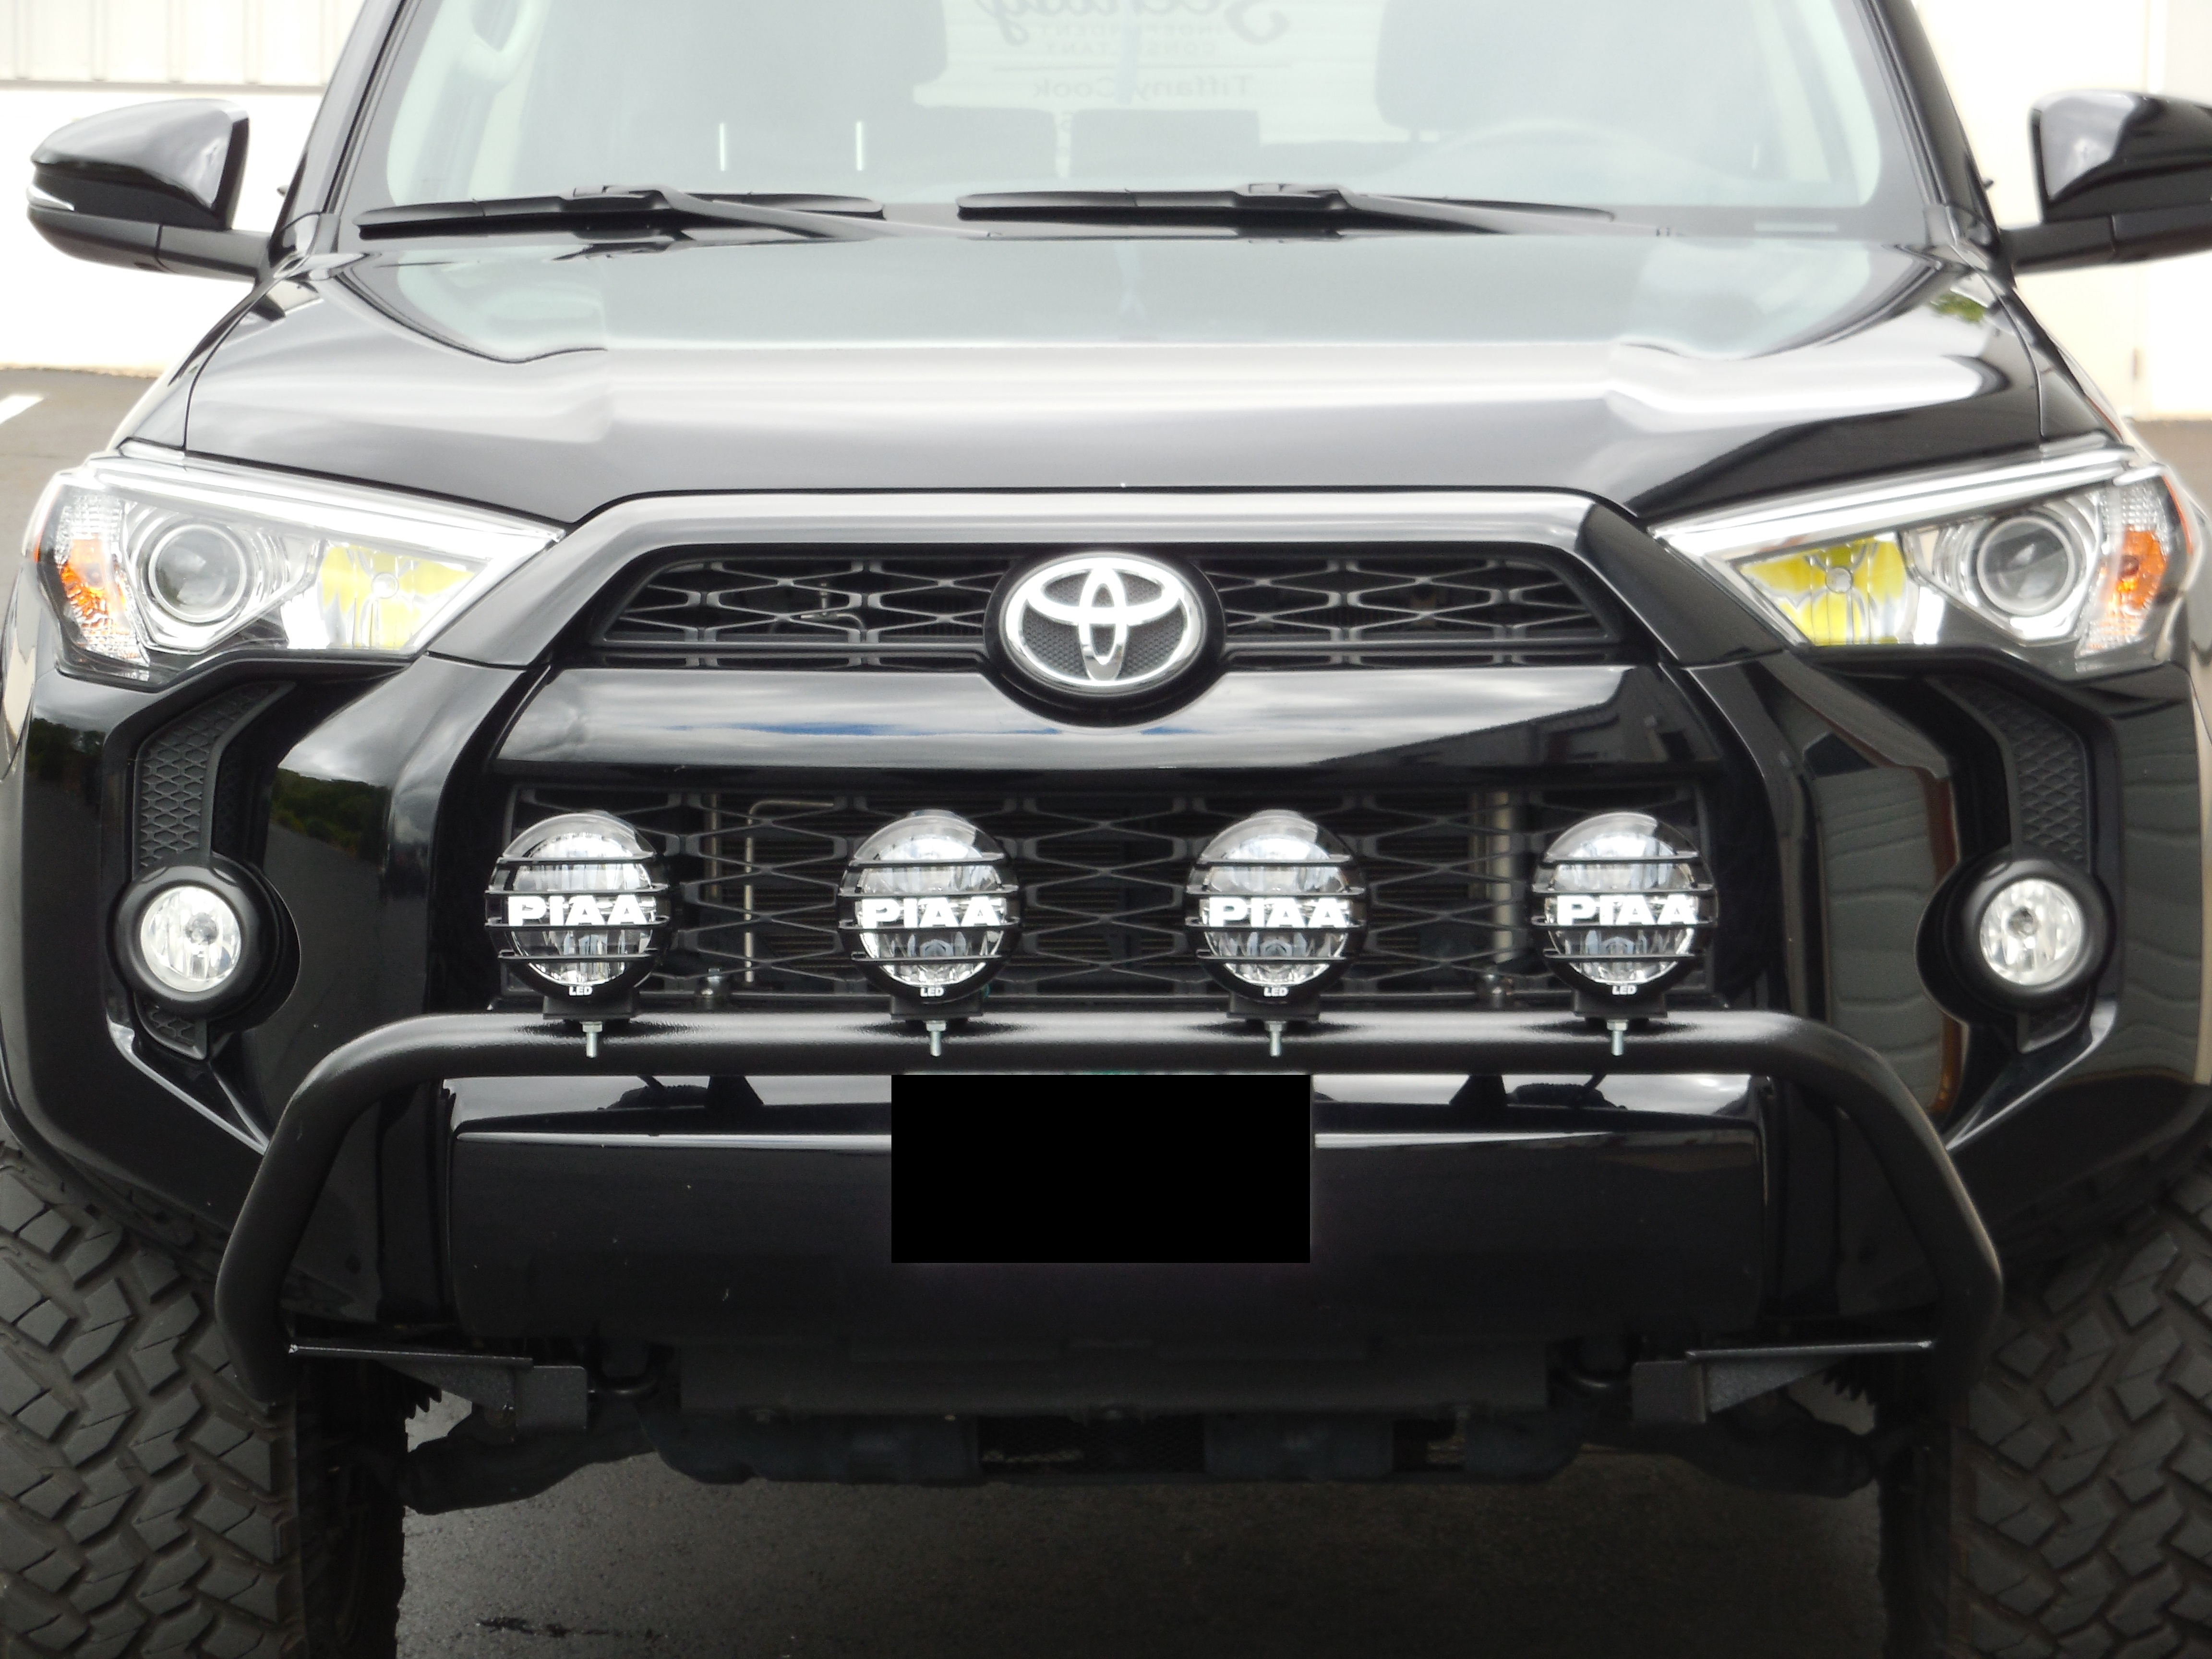 4Runner Light Bar Mount